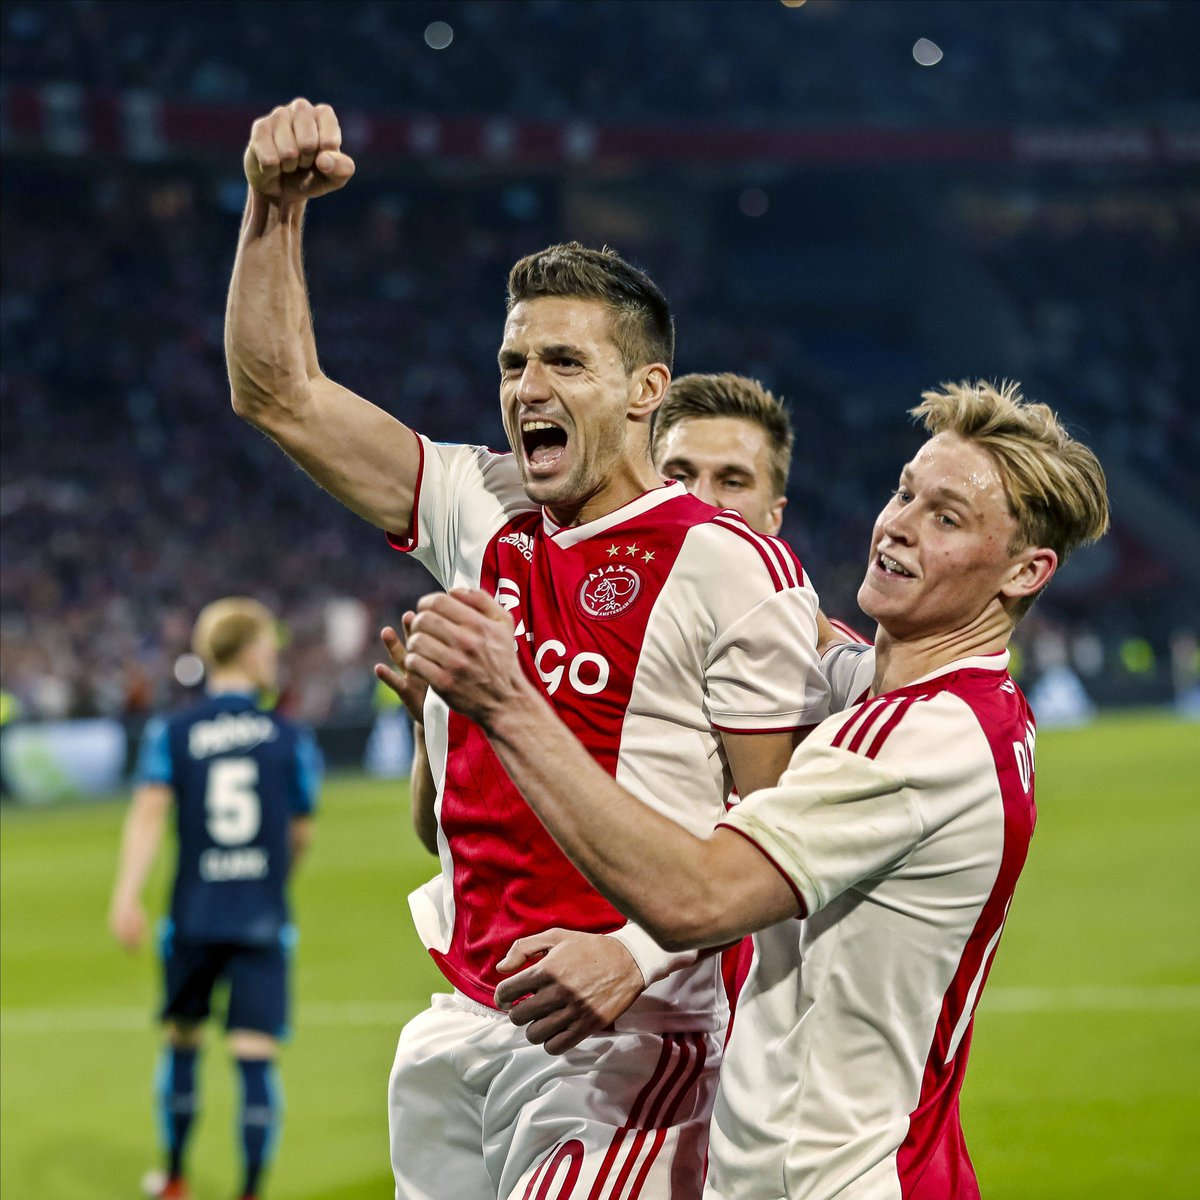 🔥1️⃣6️⃣0️⃣🔥 goals and counting for @AFCAjax_EN in 2018/19  No Dutch team has ever scored as many goals in a single season across all competitions 💪